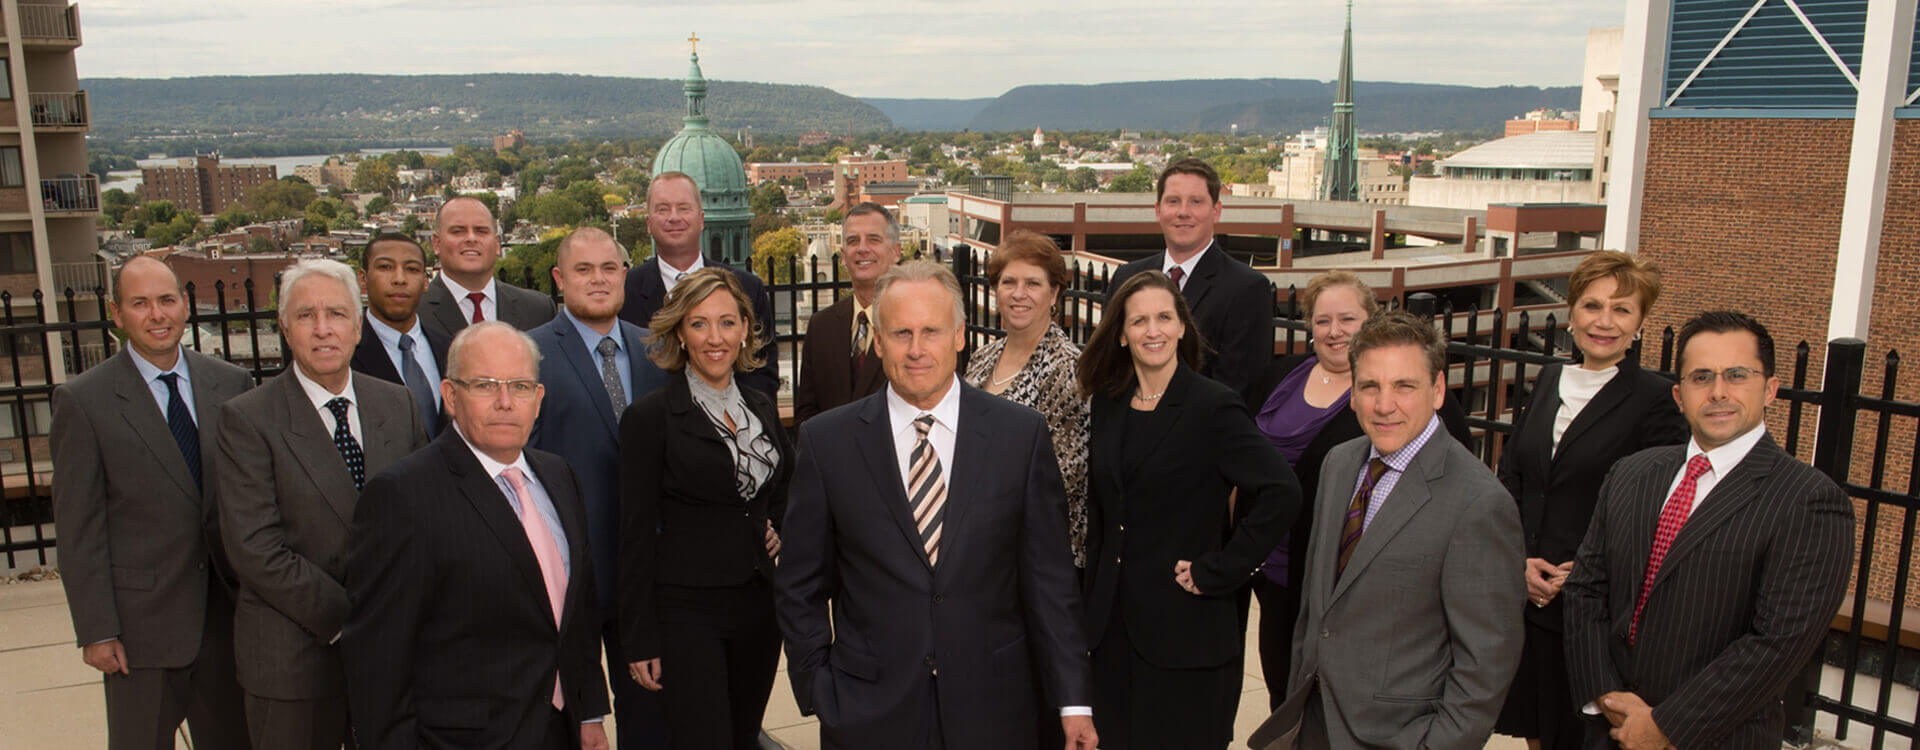 Landmark Commercial Realty rooftop office photo